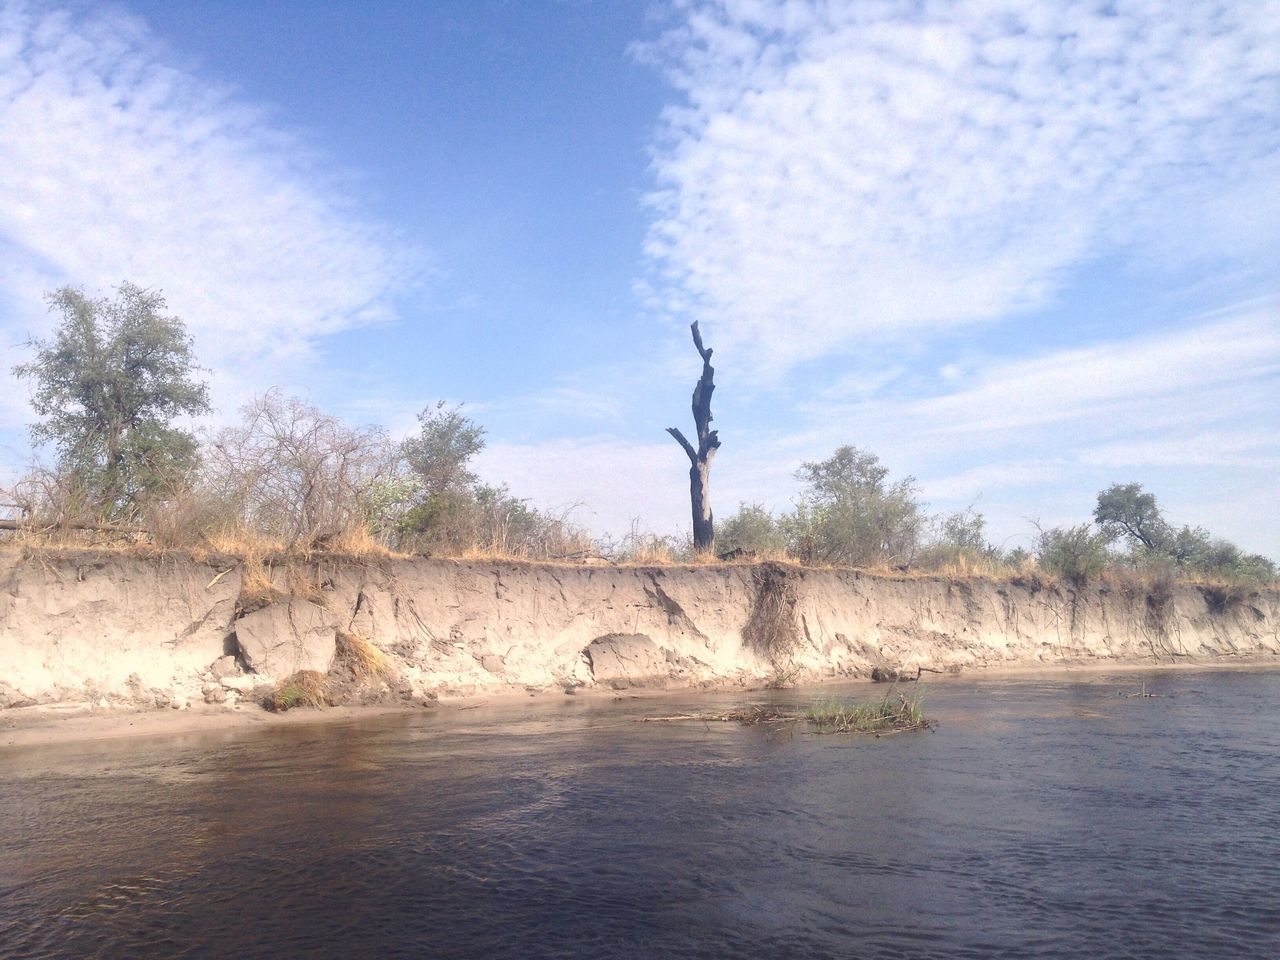 Tree at Kwando river, Caprivi Strip, Namibia Idyllic Landscape River Kwandoriver Caprivi Caprivistrip Namibia Africa Water Tree Dead Tree Nature Nature Photography